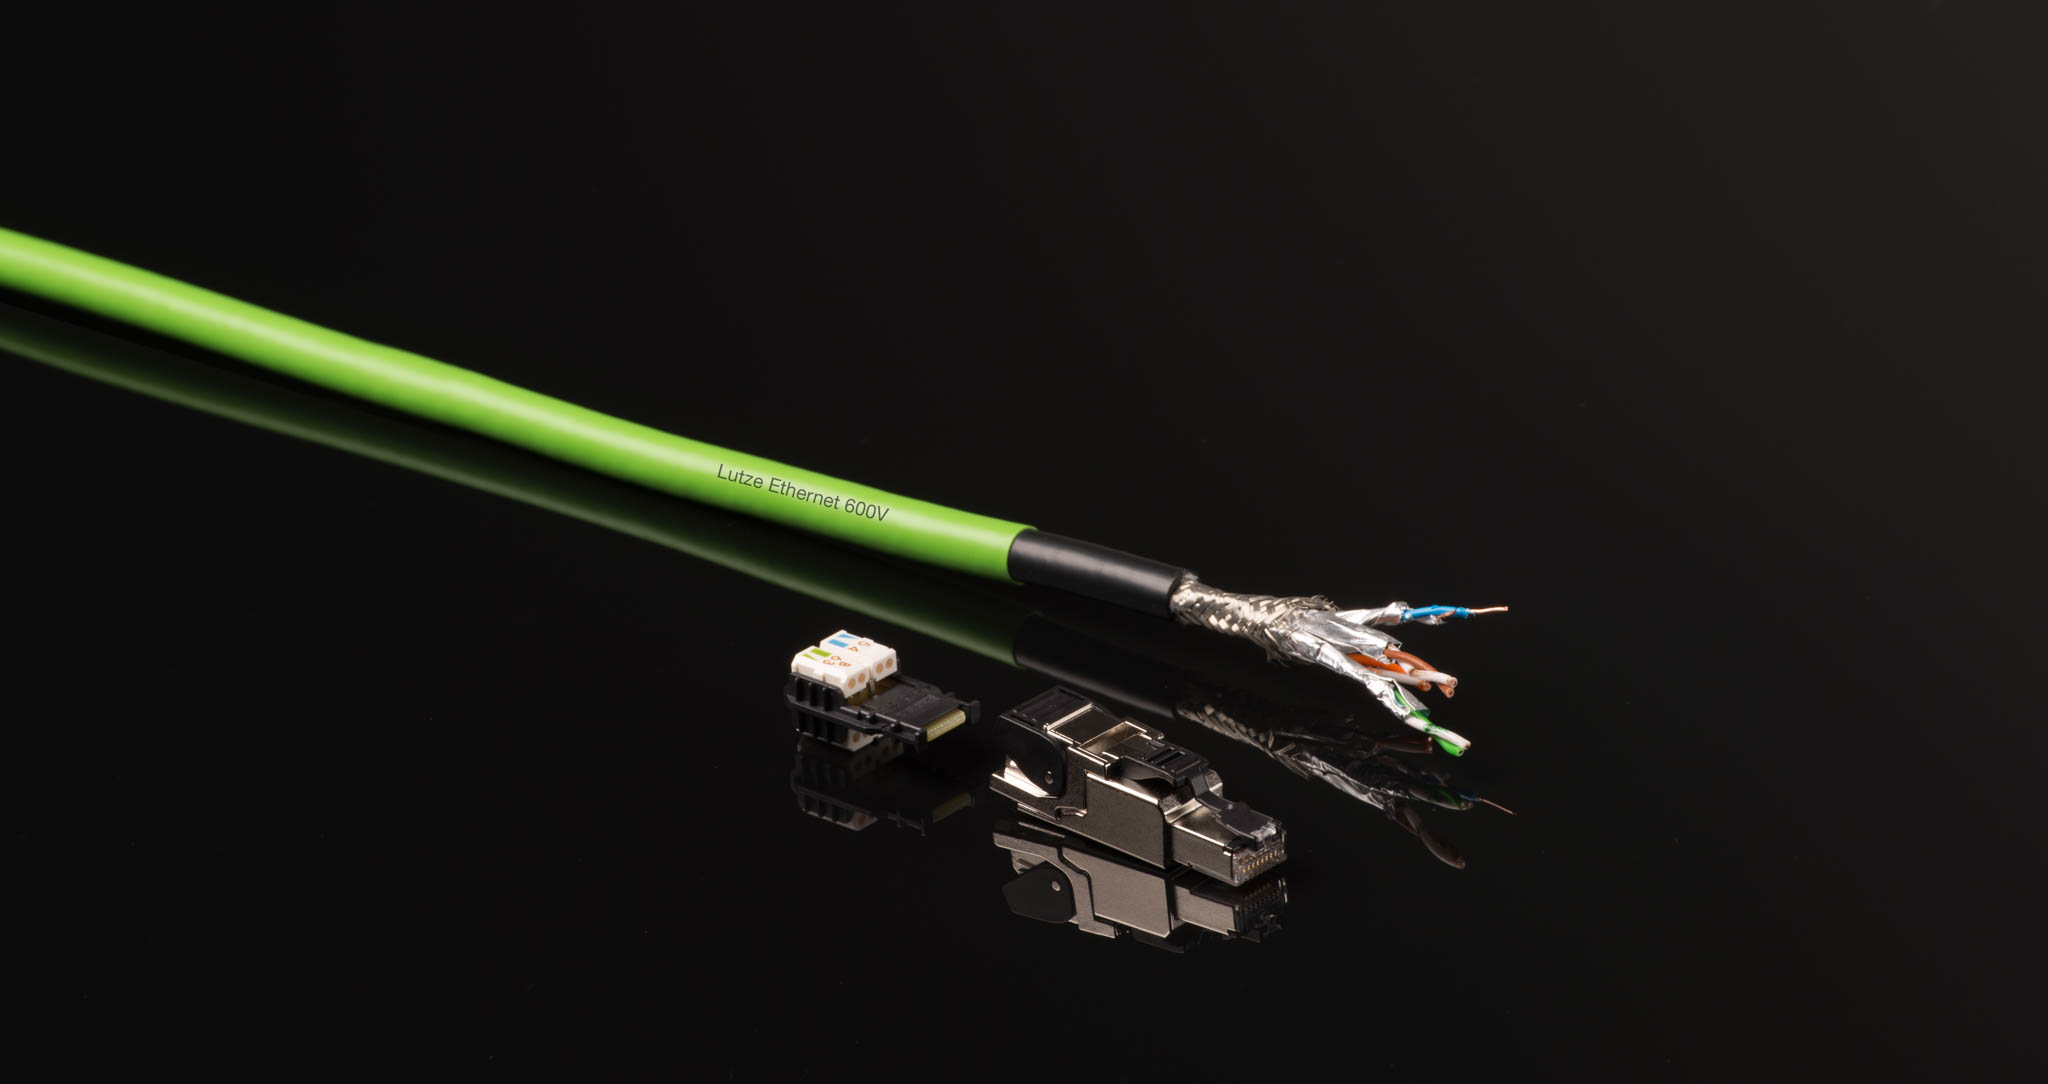 Cable product shot for online product introduction